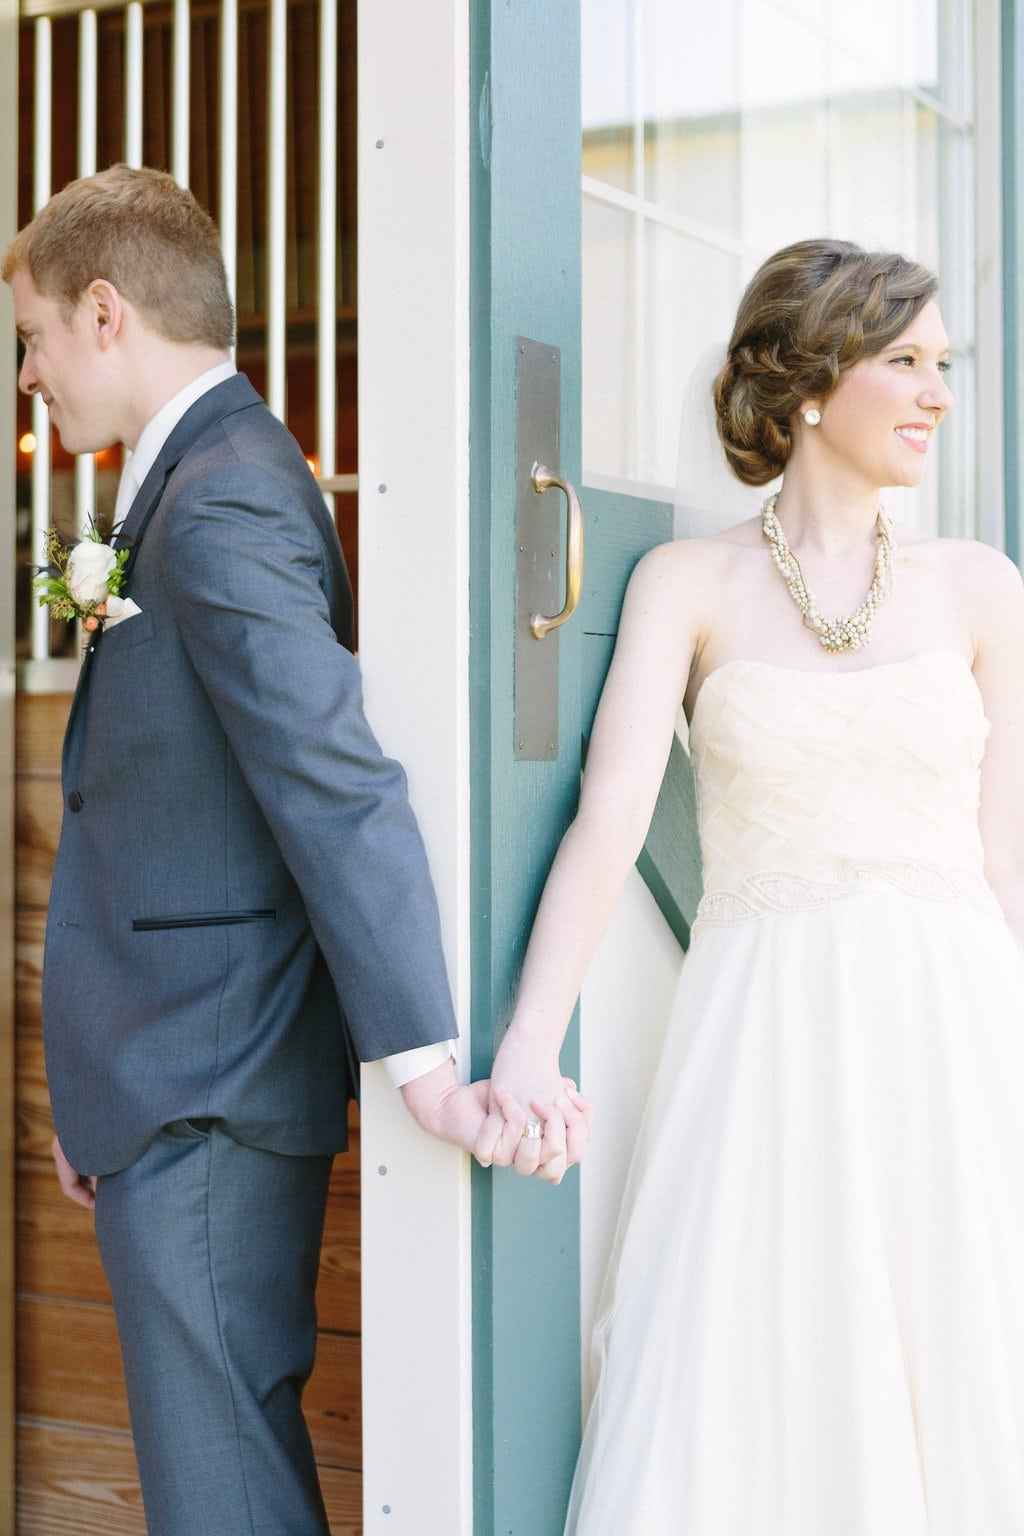 bride and groom share a moment holding hands before seeing each other